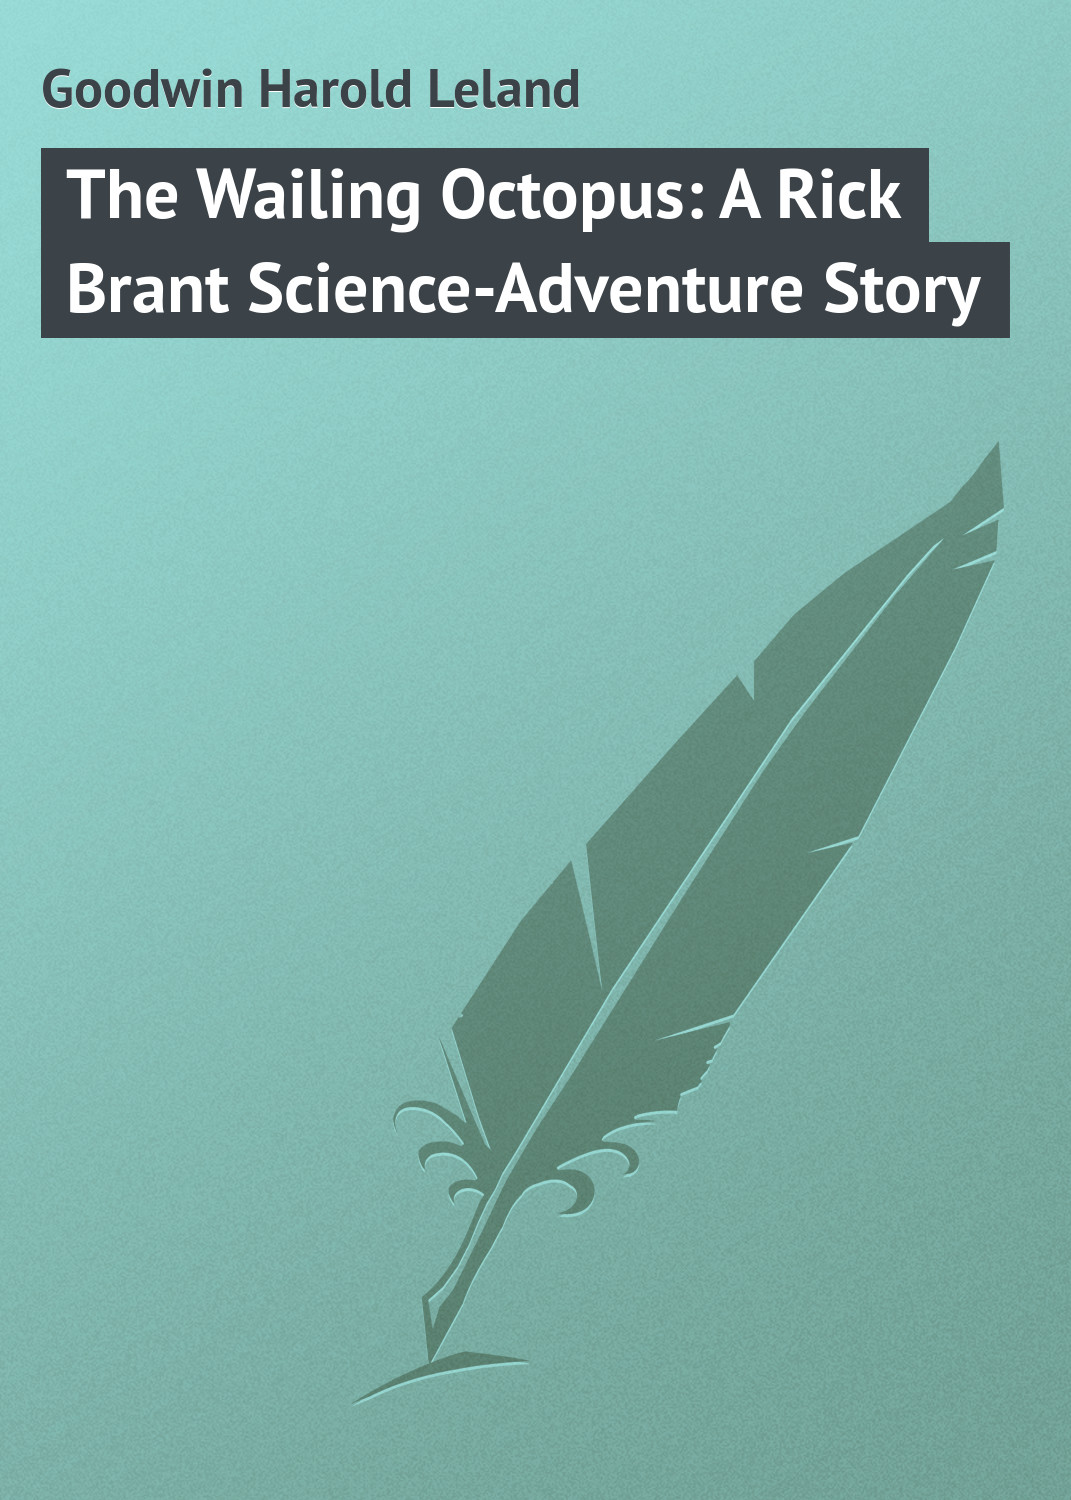 Goodwin Harold Leland The Wailing Octopus: A Rick Brant Science-Adventure Story goodwin harold leland the flying stingaree a rick brant science adventure story